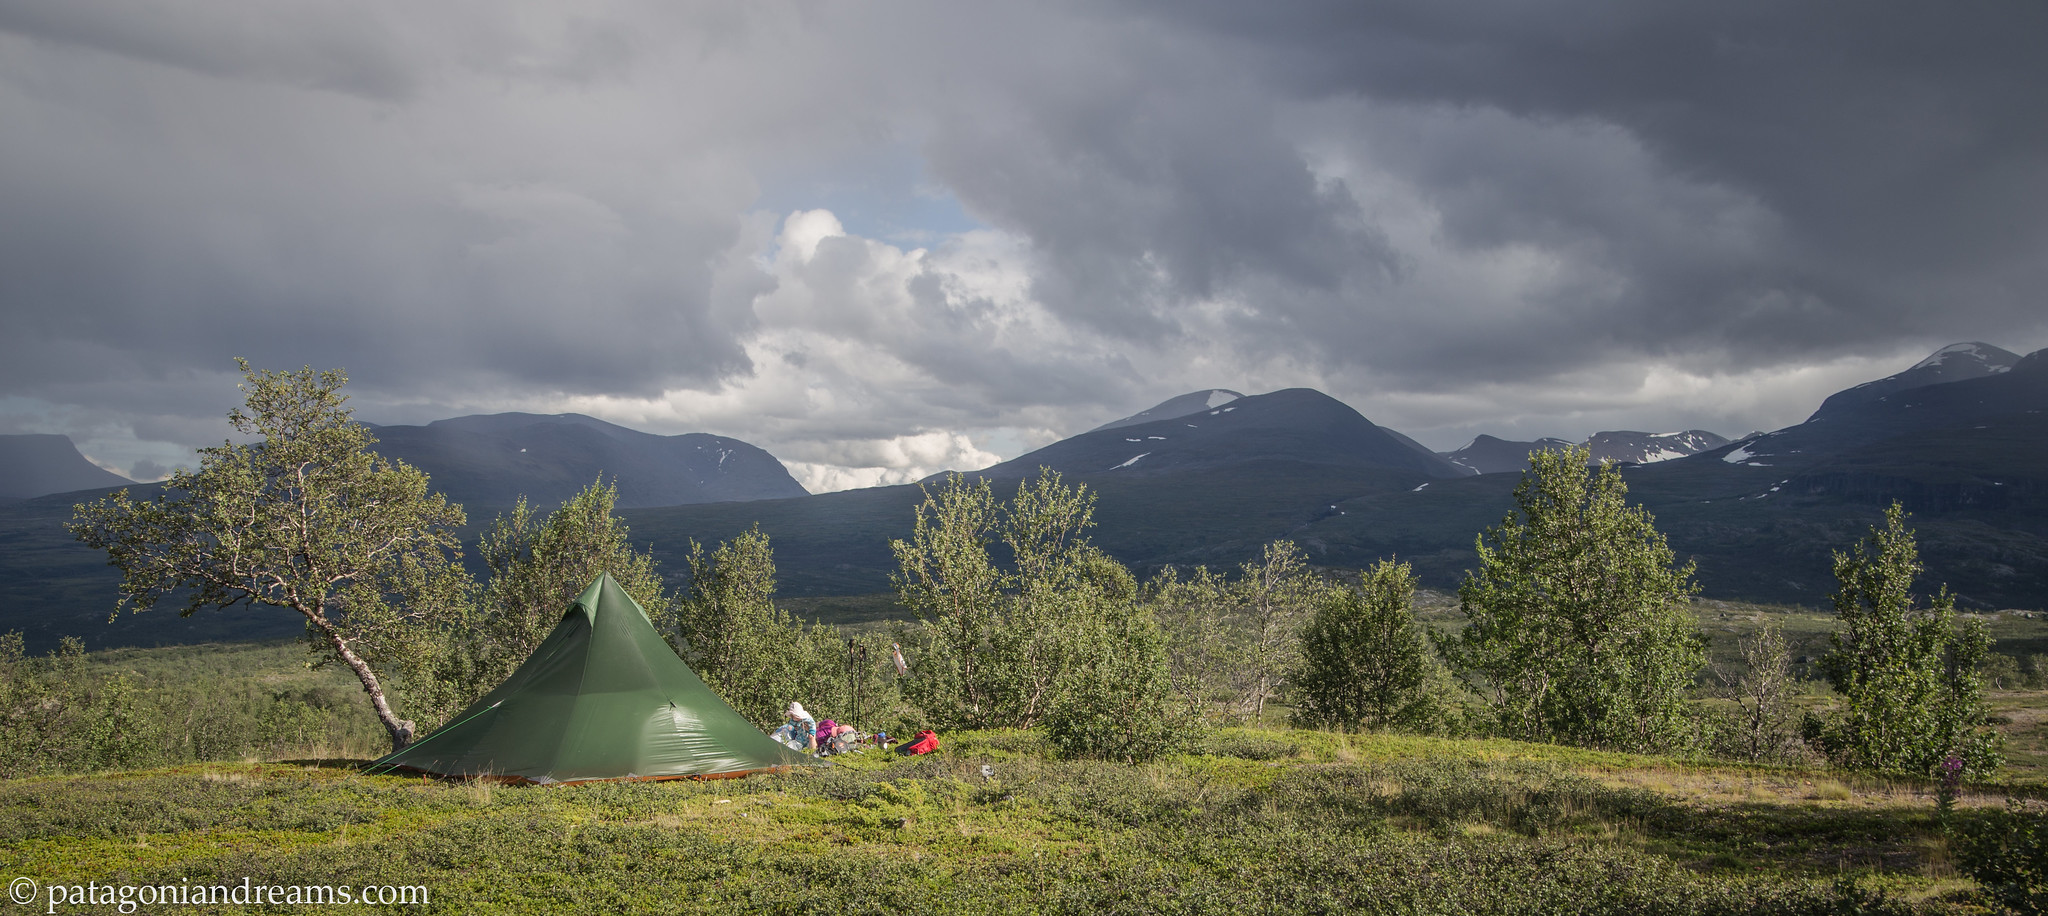 Another bivaouc spot in the Abisko National Park. Swedish Lapland.